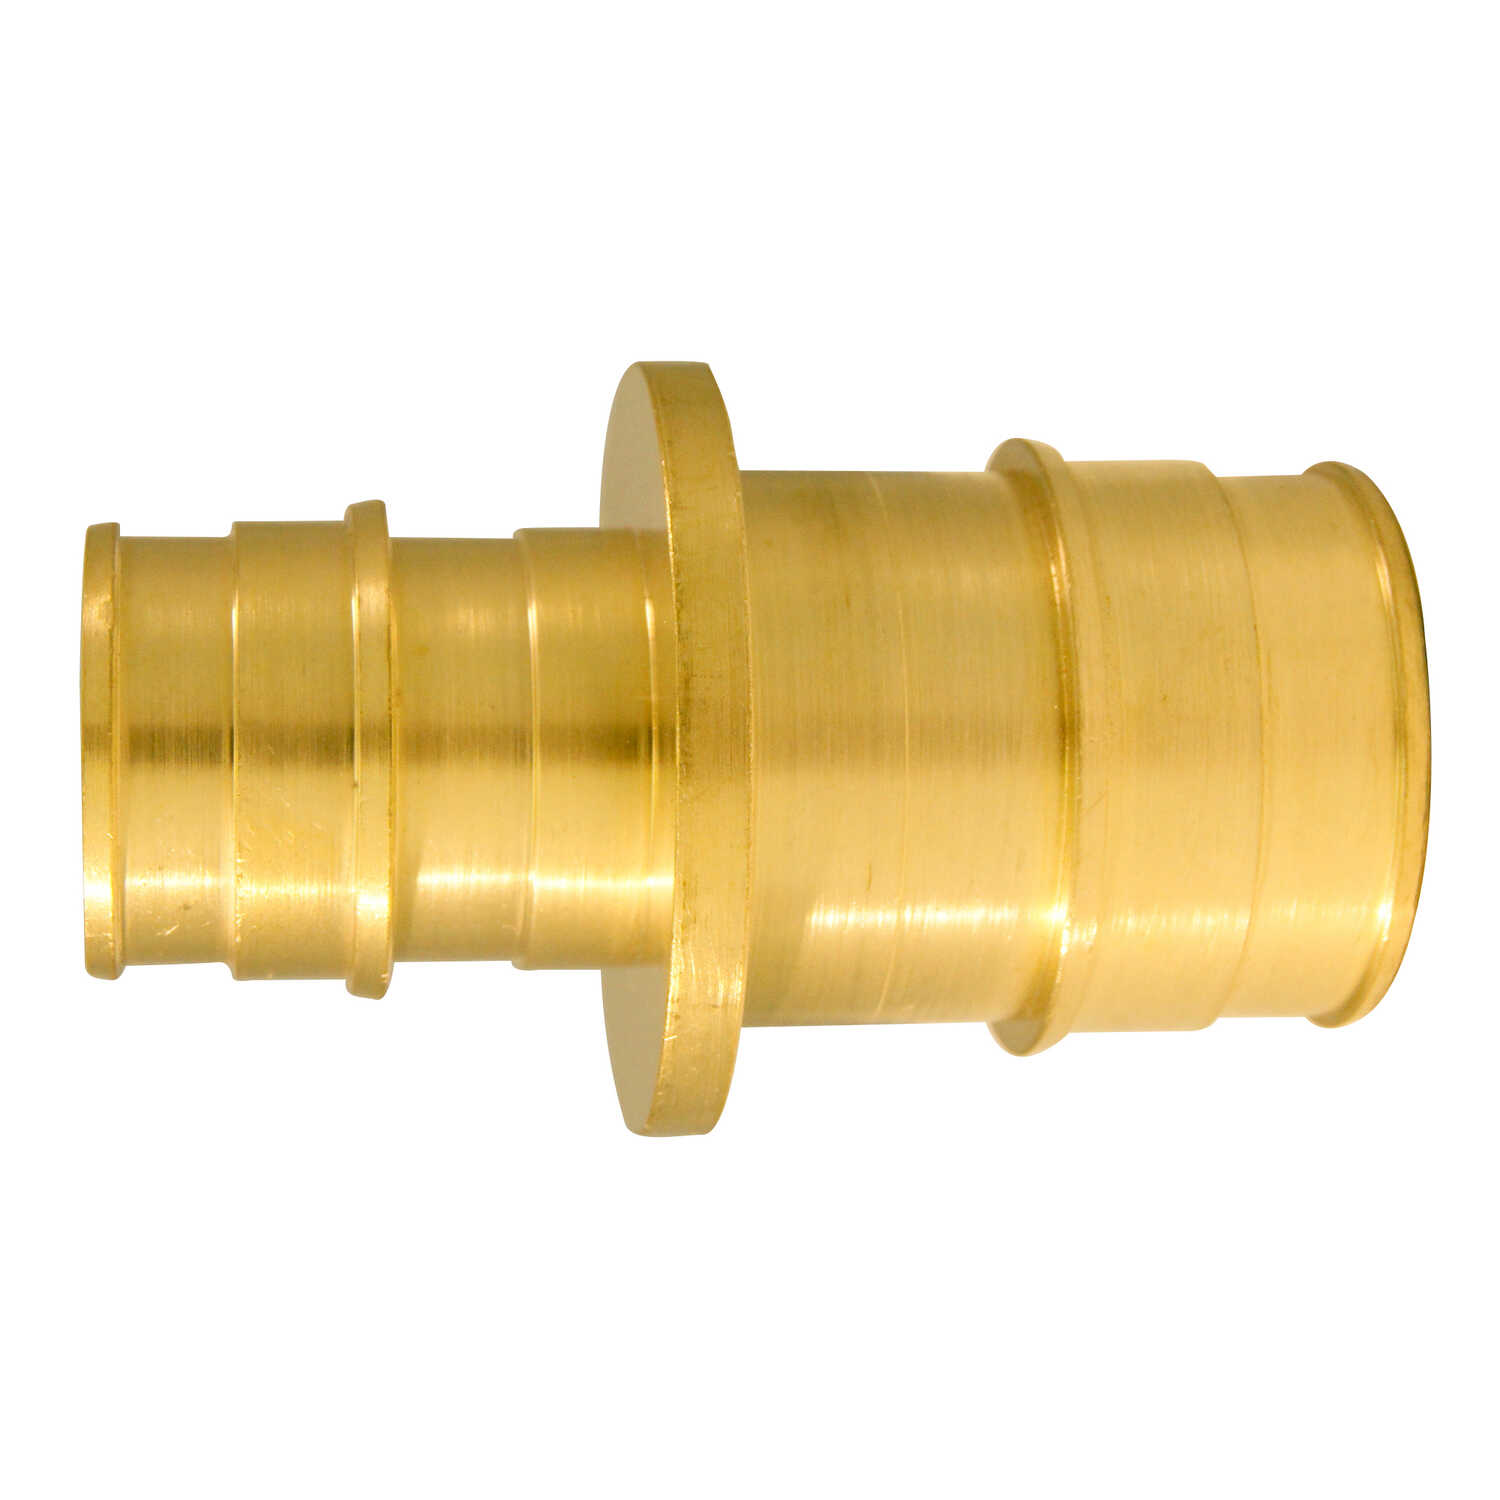 Apollo  Expansion PEX / Pex A  1 in. PEX   x 3/4 in. Dia. PEX  Coupling  1 each